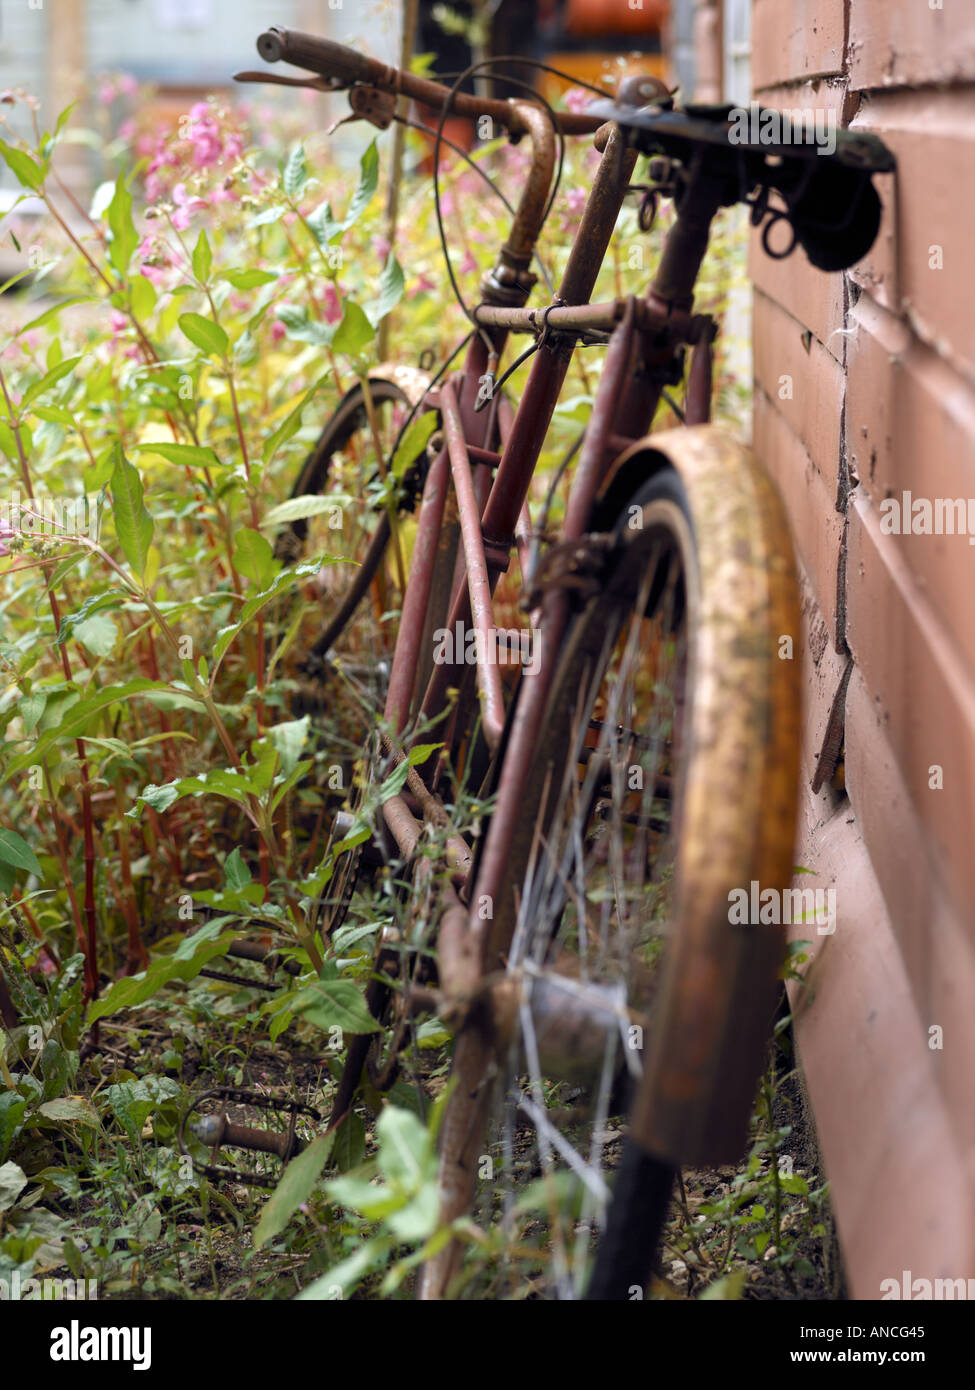 Rusty Bicycle - Stock Image